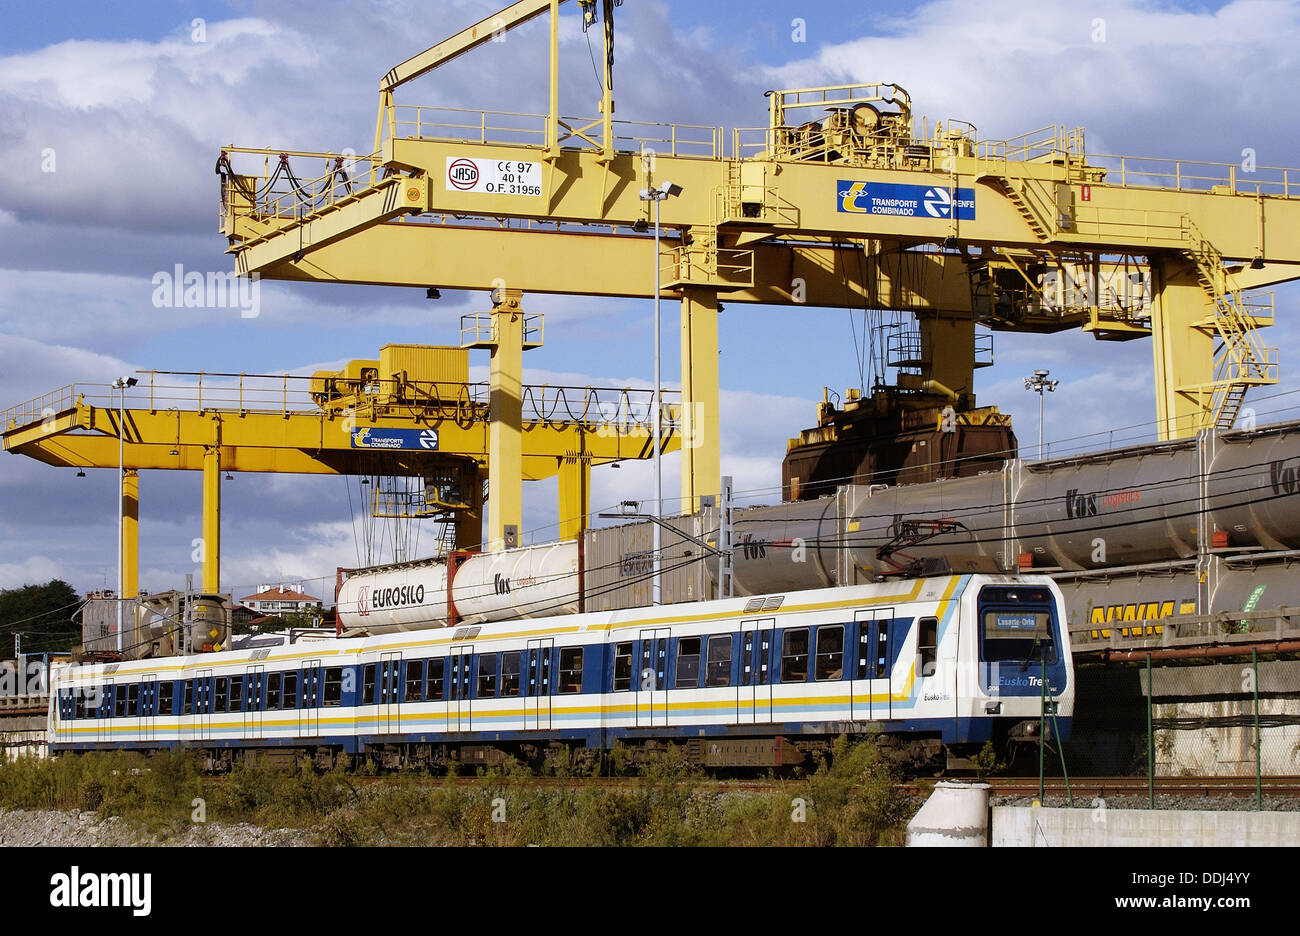 Euskotren with bridge cranes in background. Cross-border freight train station. Irun. Guipuzcoa. Basque Country. Spain - Stock Image